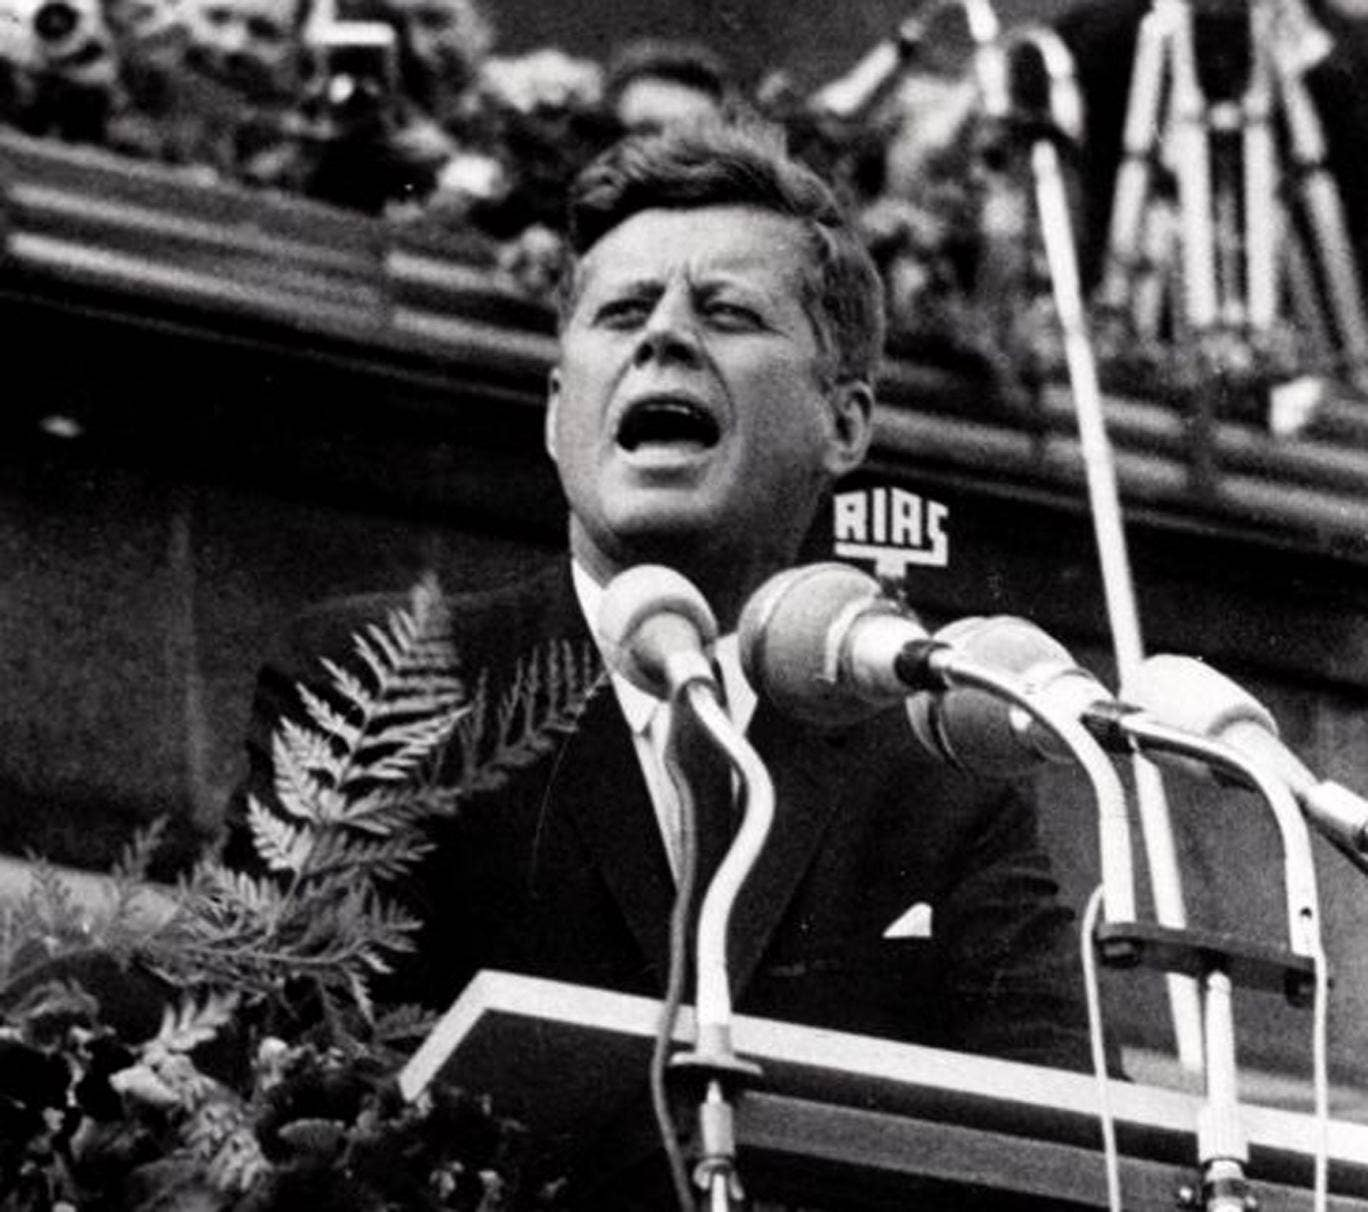 Kennedy declares 'Ich bin ein Berliner' in West Berlin in 1963